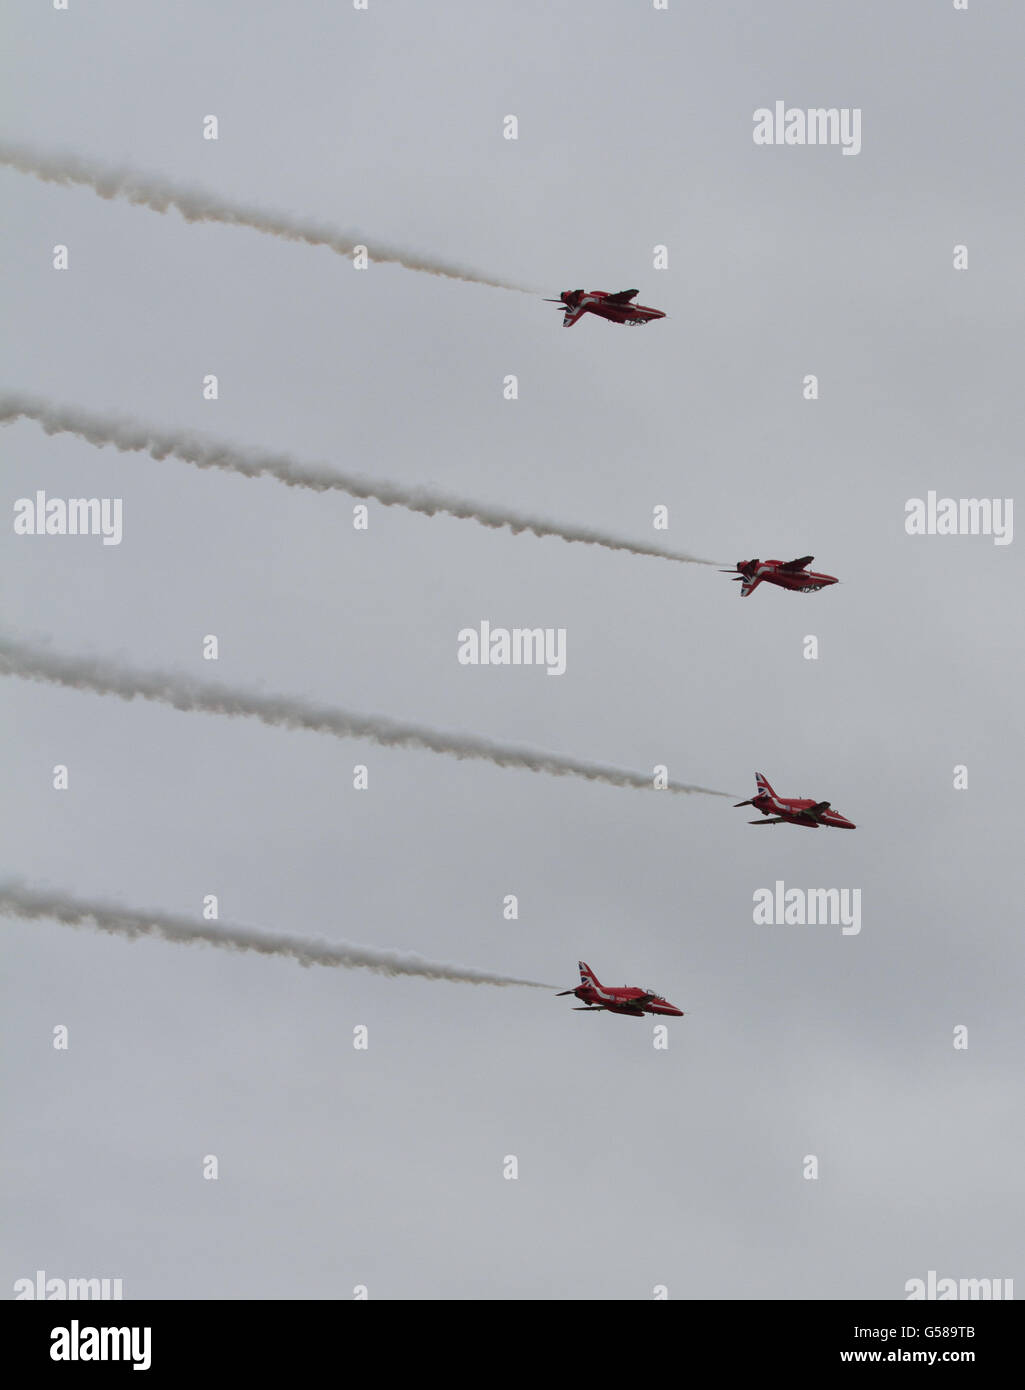 RAF Aerobatic Display Team, The Red Arrows - Reds mirroring - Stock Image